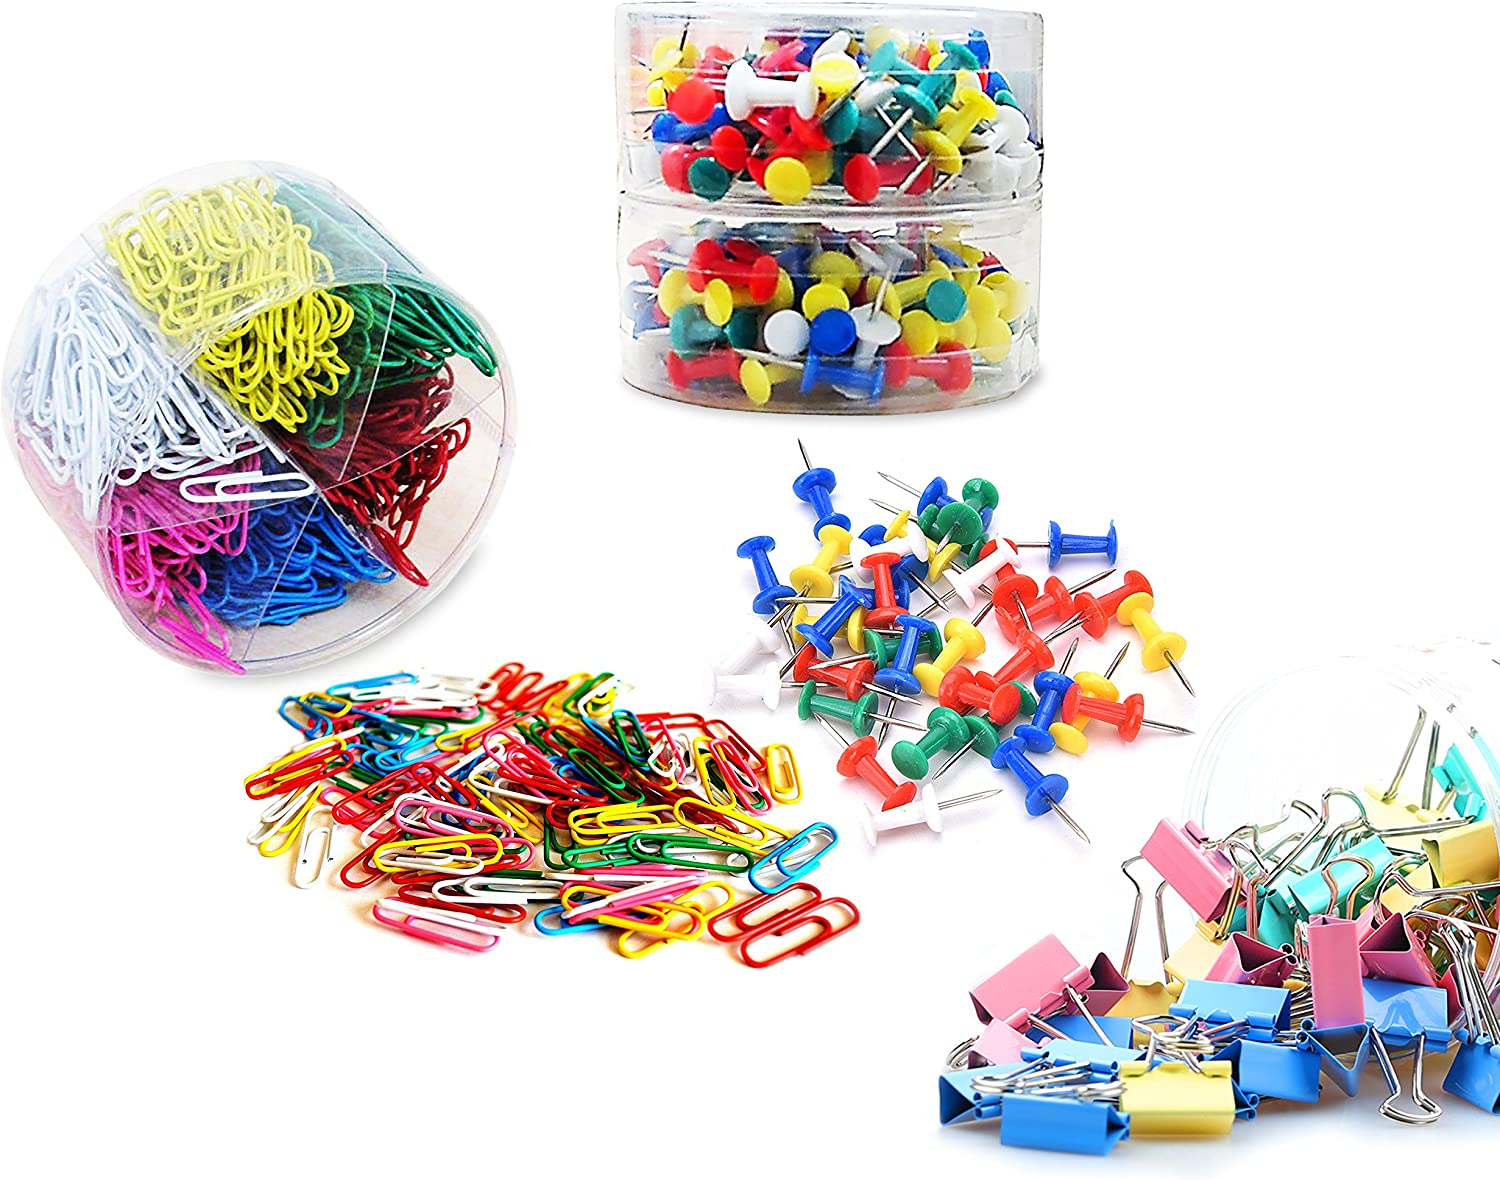 Pins & Tacks All In One Combo Office Supplies Set- 600 Paper Clips, 200 Push Pins, 40 Binder Clips. Great Teachers Pack! By Mega Stationers